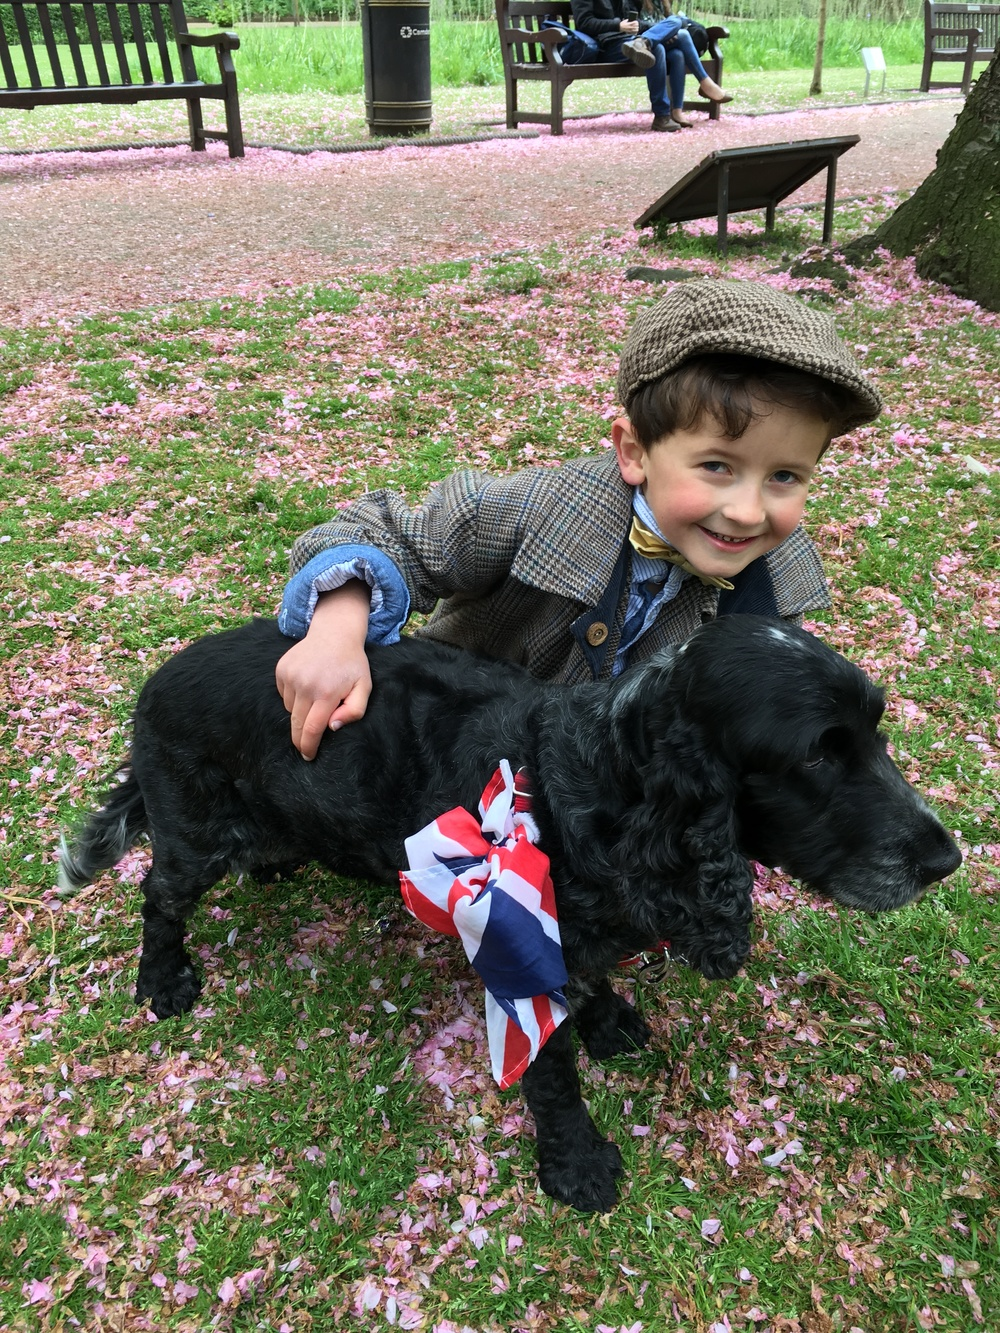 Accessorise your look with flags, dogs, children and flowers  image courtesy of Kelly Wise